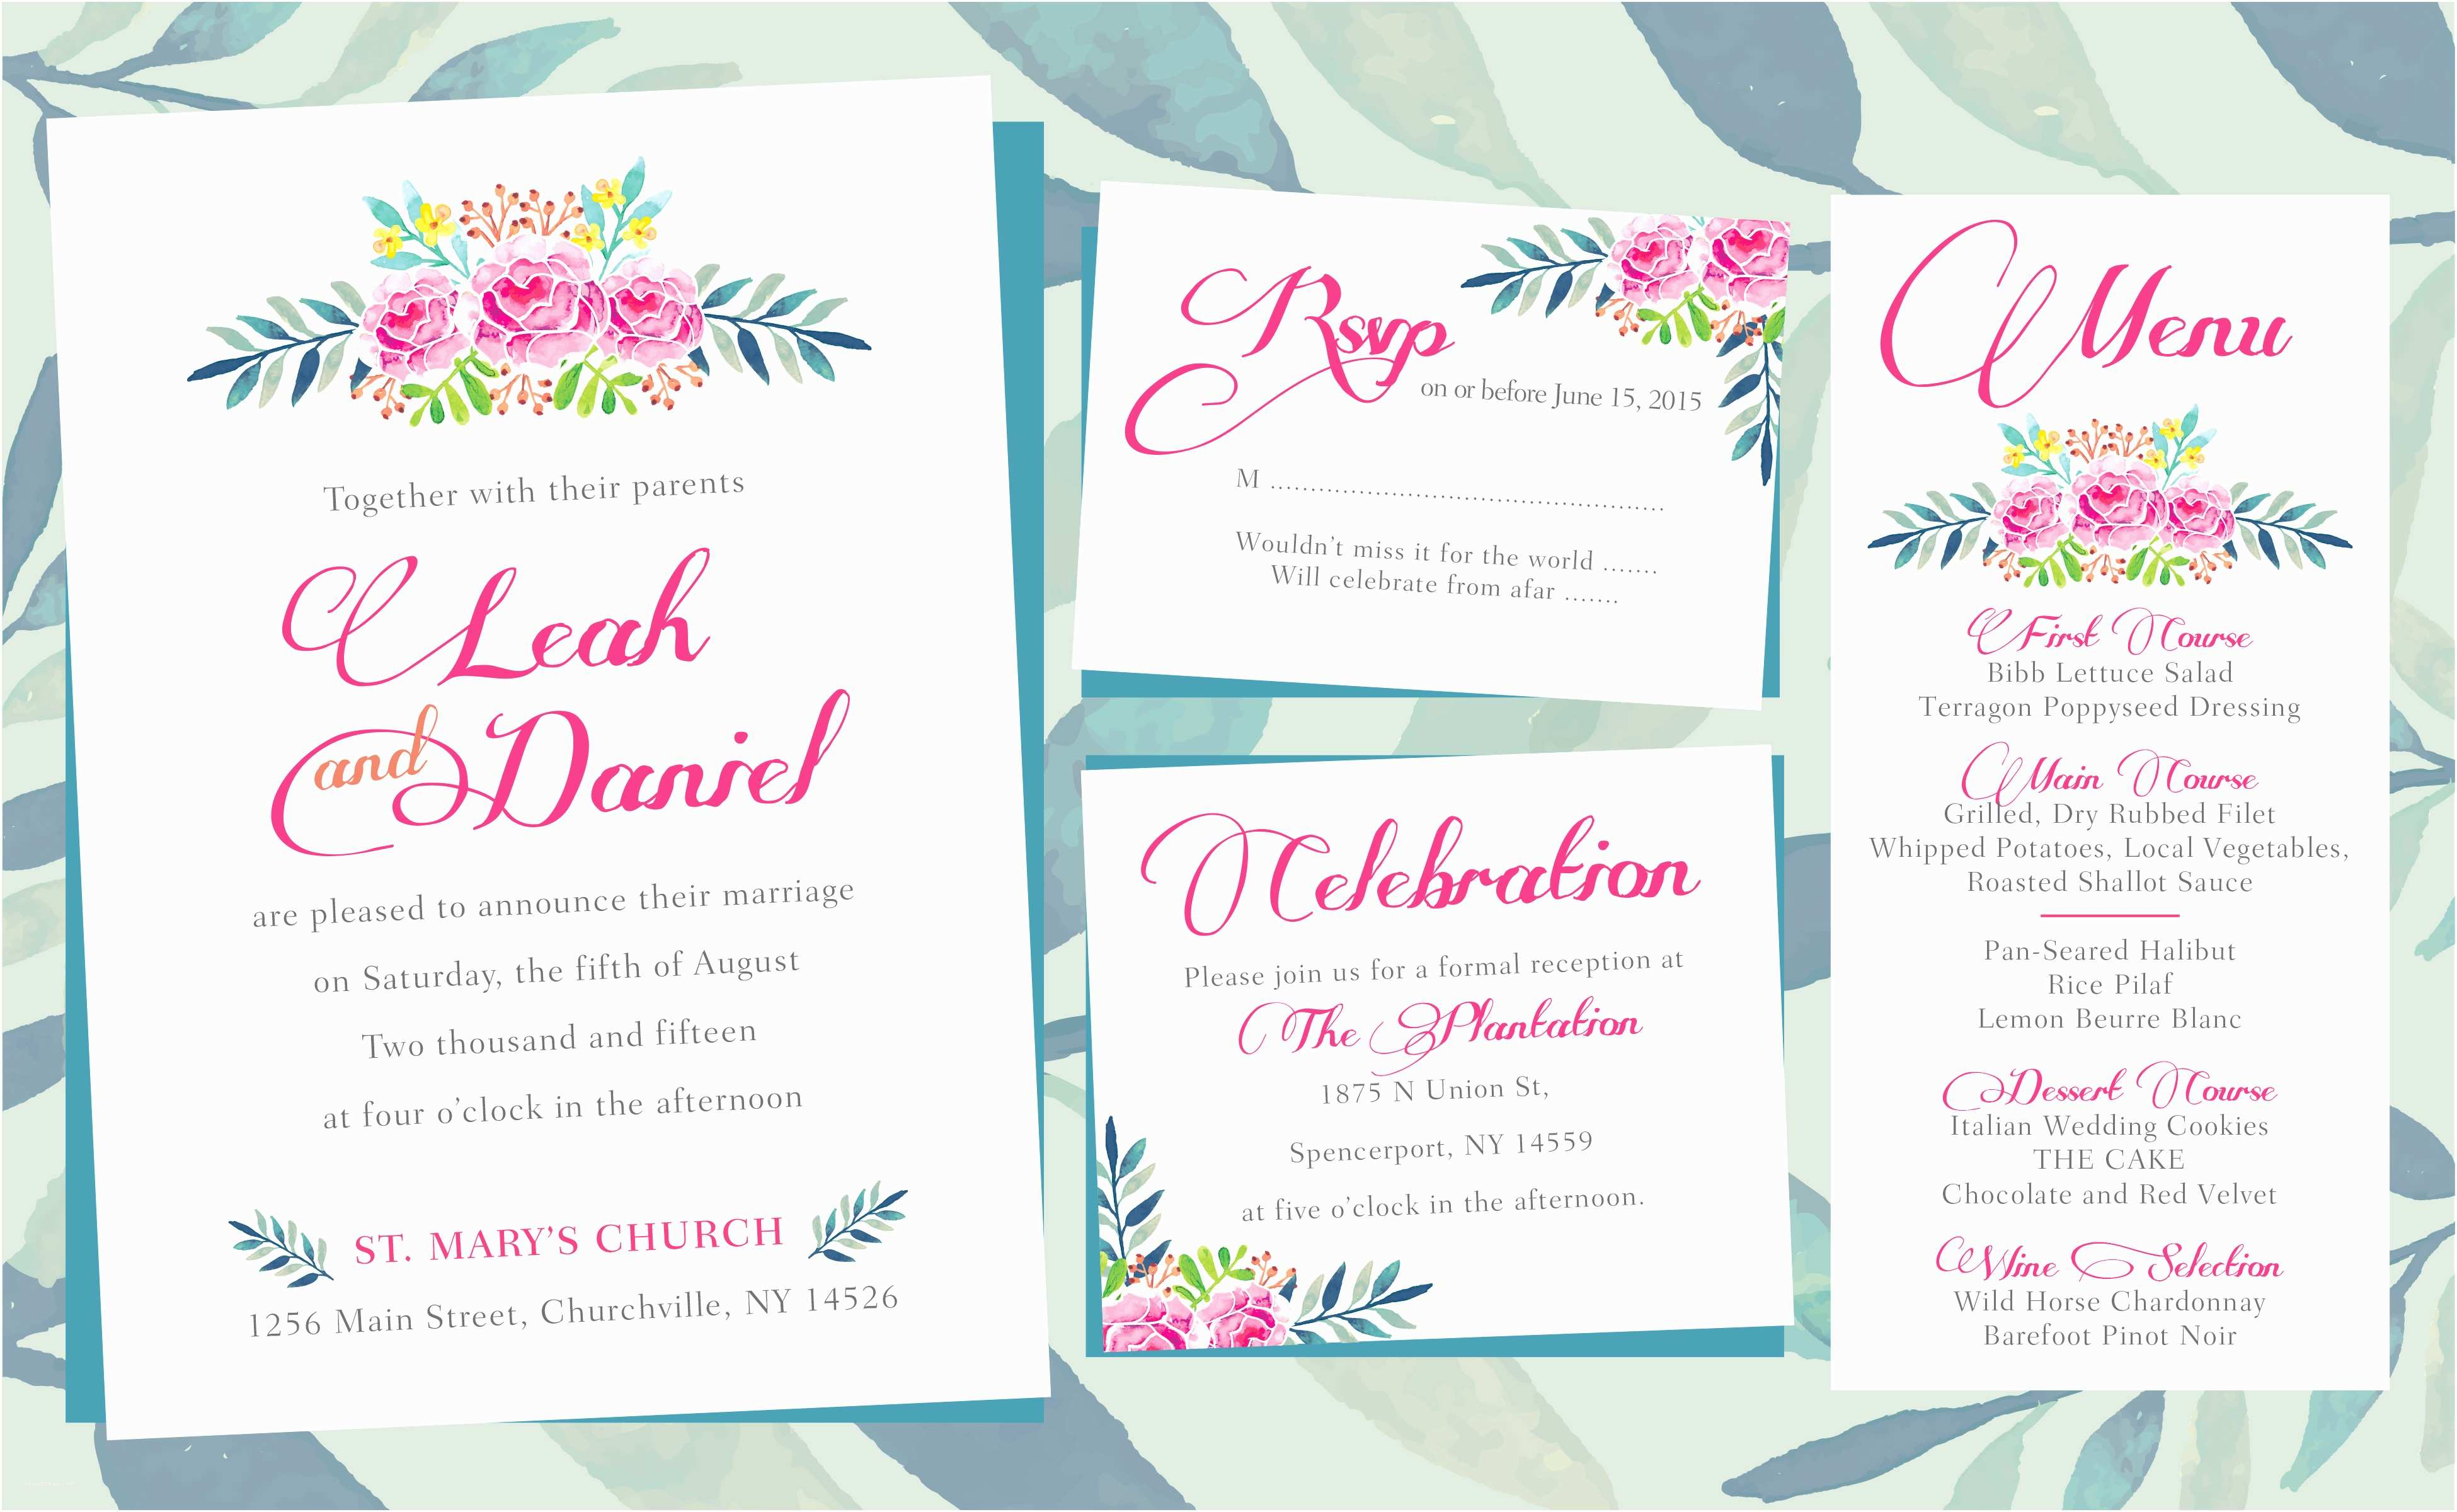 How to Print Wedding Invitations Floral Wedding Invitations – Printing by Penny Lane